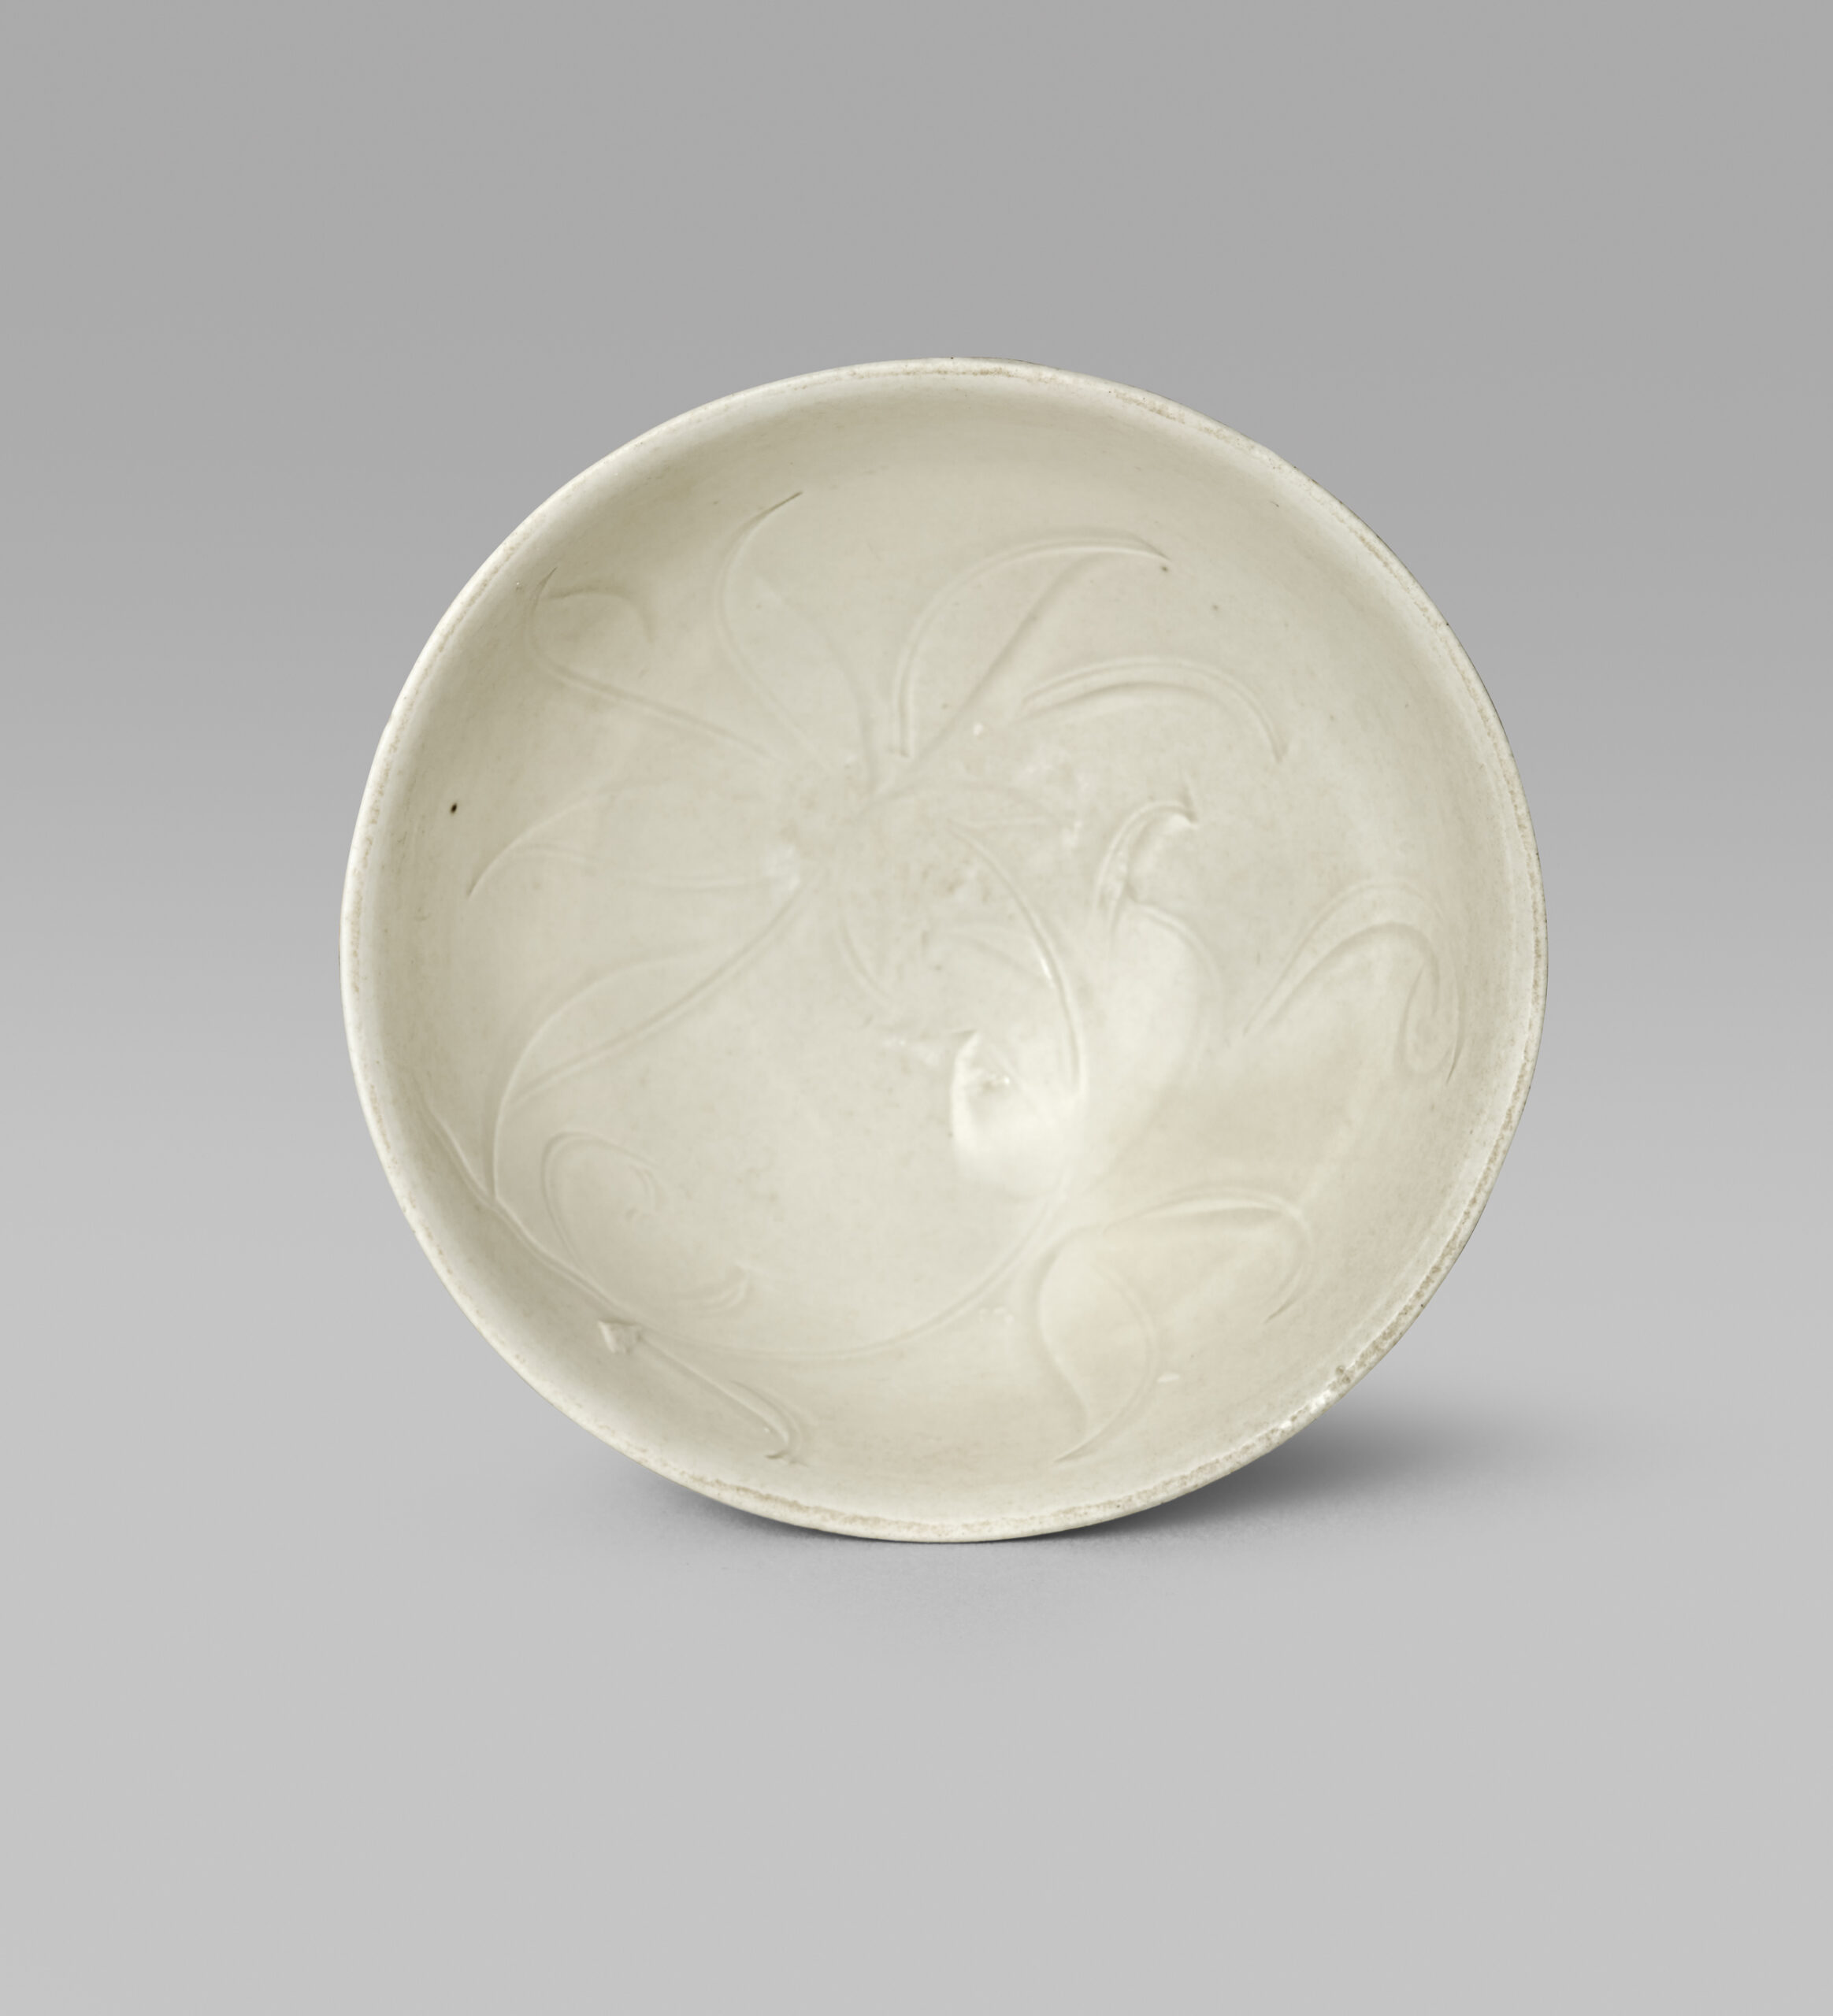 A rare Ding carved bowl (Northern Song dynasty, 960-1127)